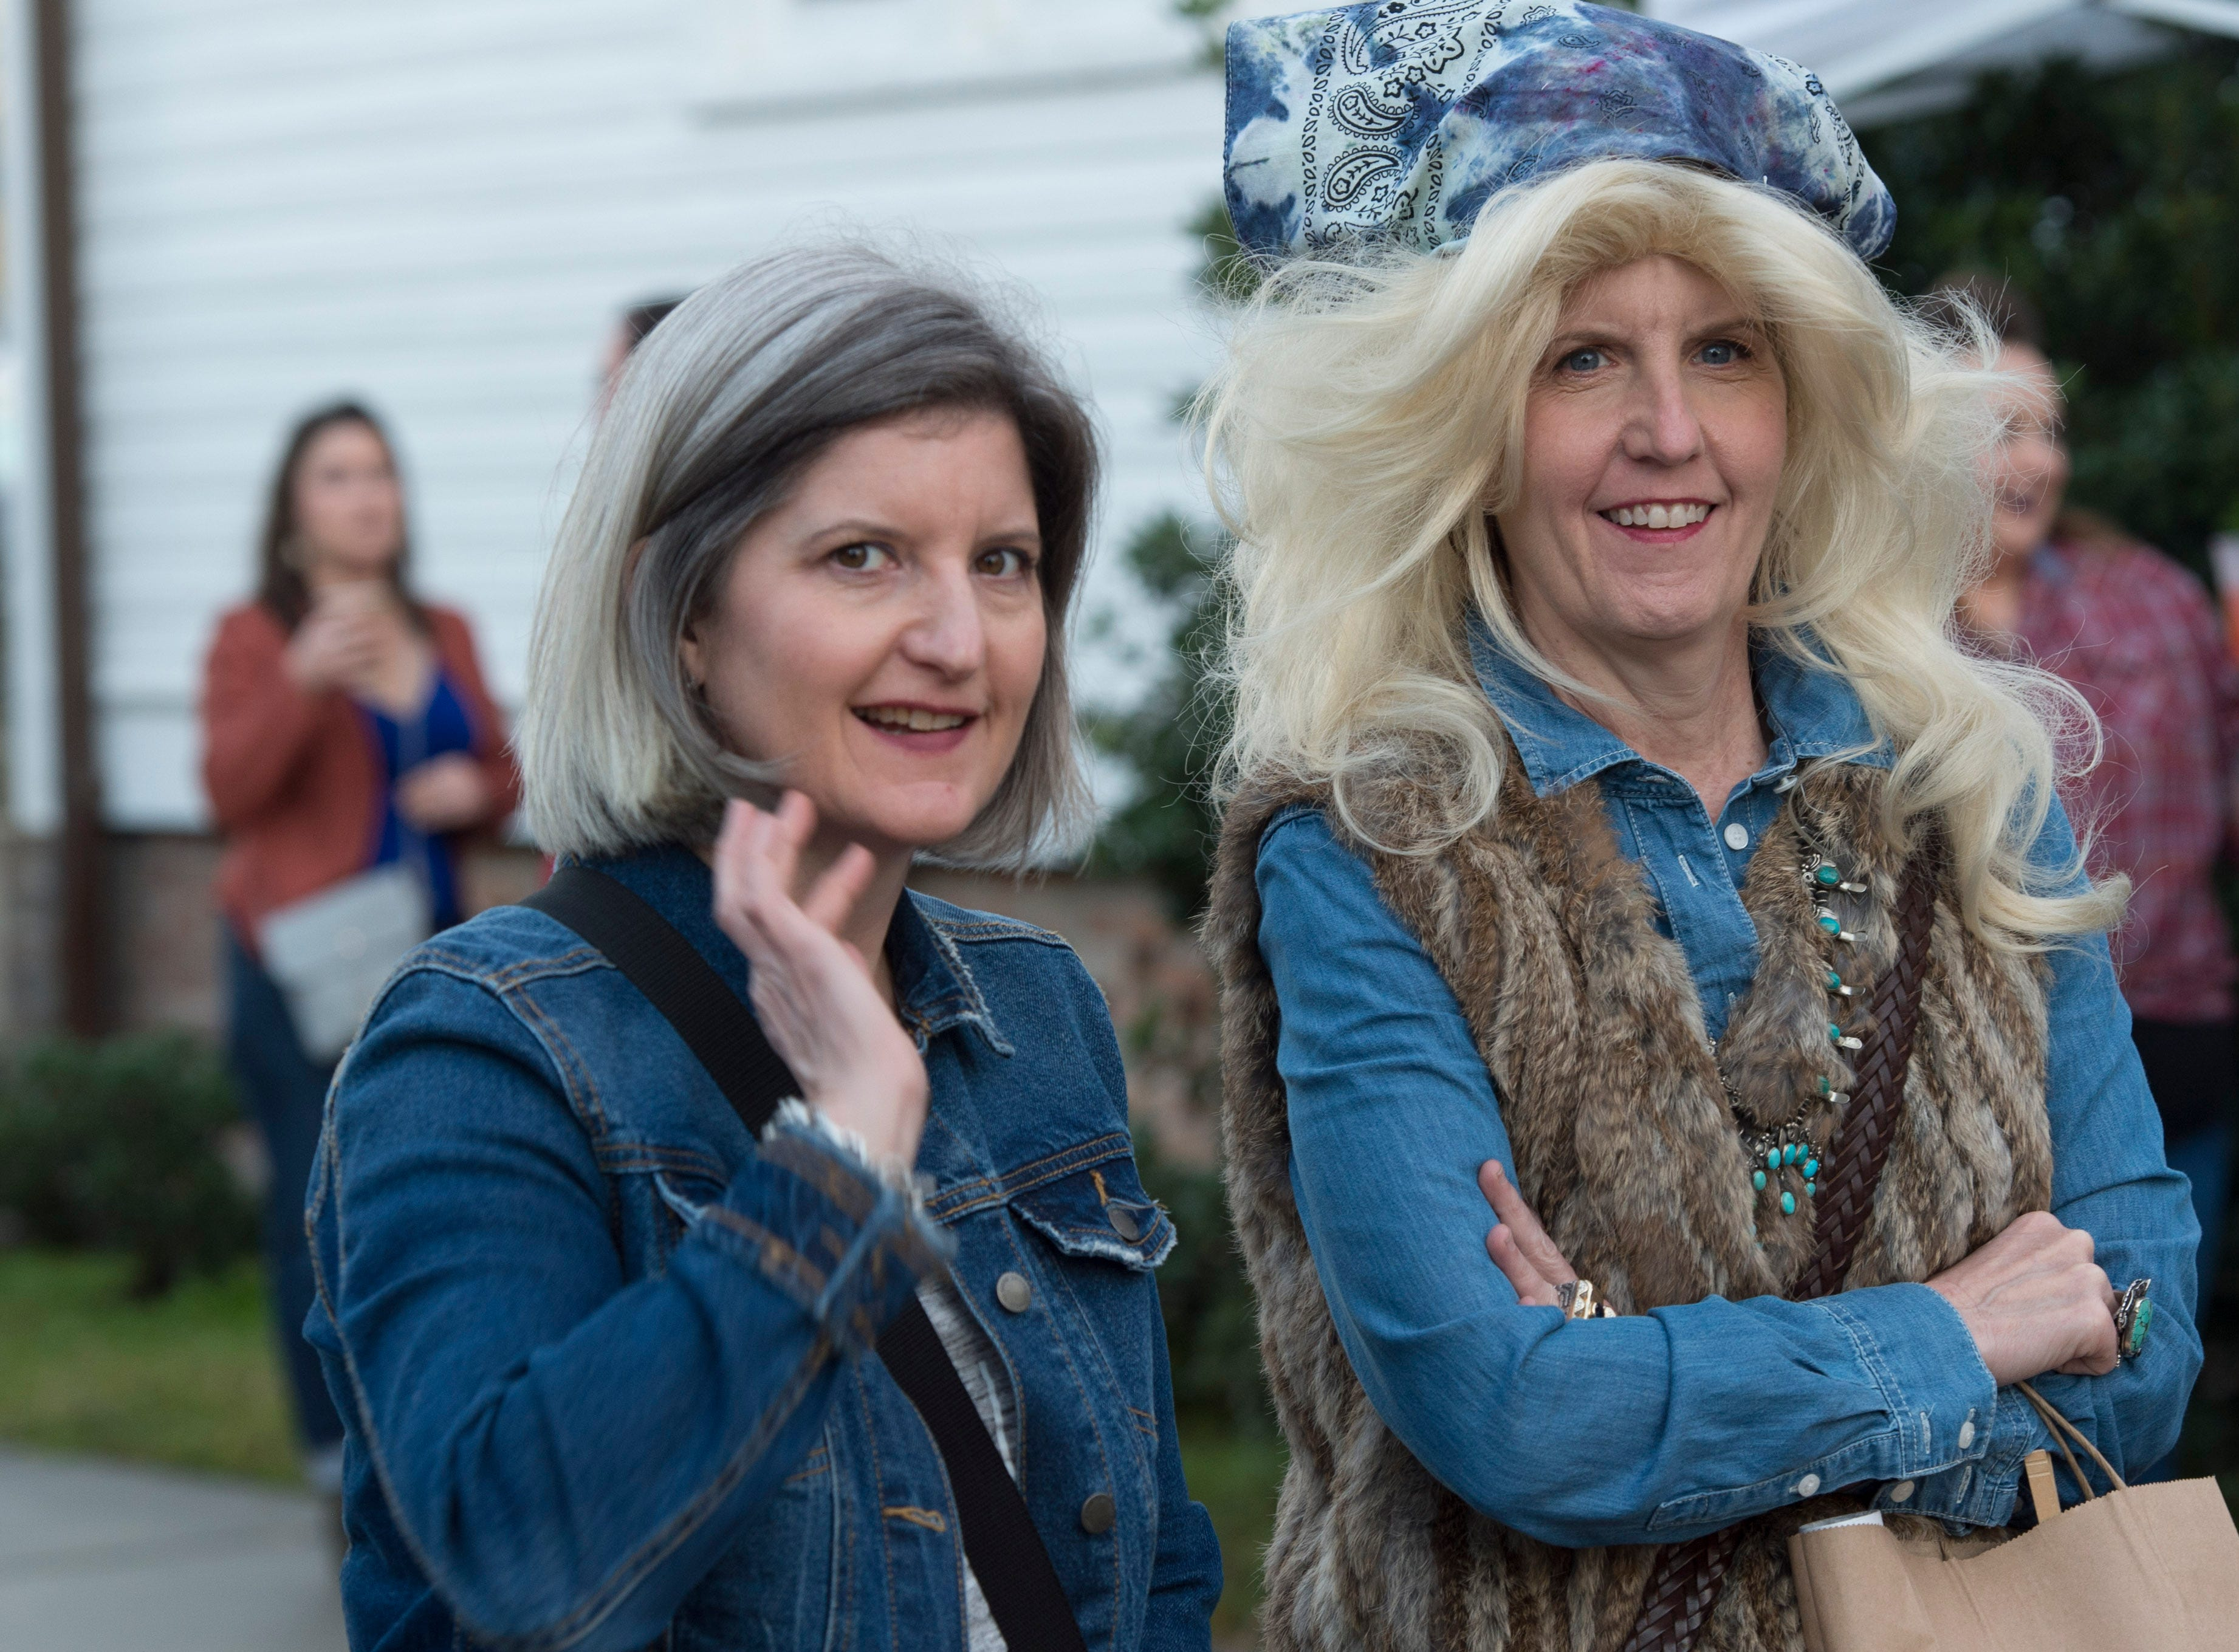 Attendees and fans of the 4th annual Dolly Should festival pose together before the Dolly Parton look-a-like contest held on the porch of the Mockingbird Cafe. Saturday, Jan. 12, 2019.